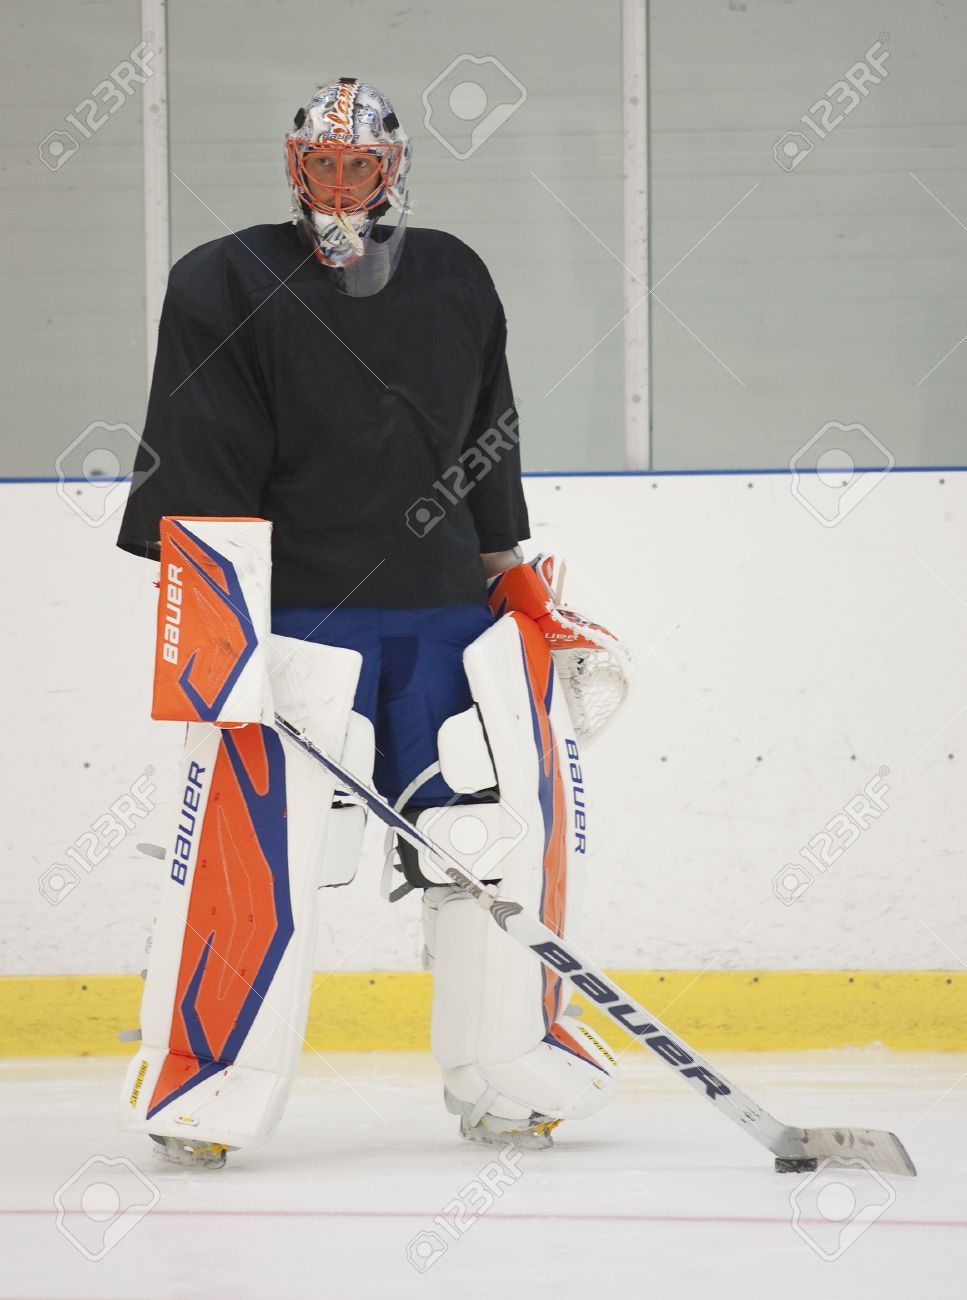 Anders Nilsson - New York Islanders - Summer camp in Sweden for ice hockey goalies (2012-06-27 to 2012-06-30). Stock Photo - 14339010